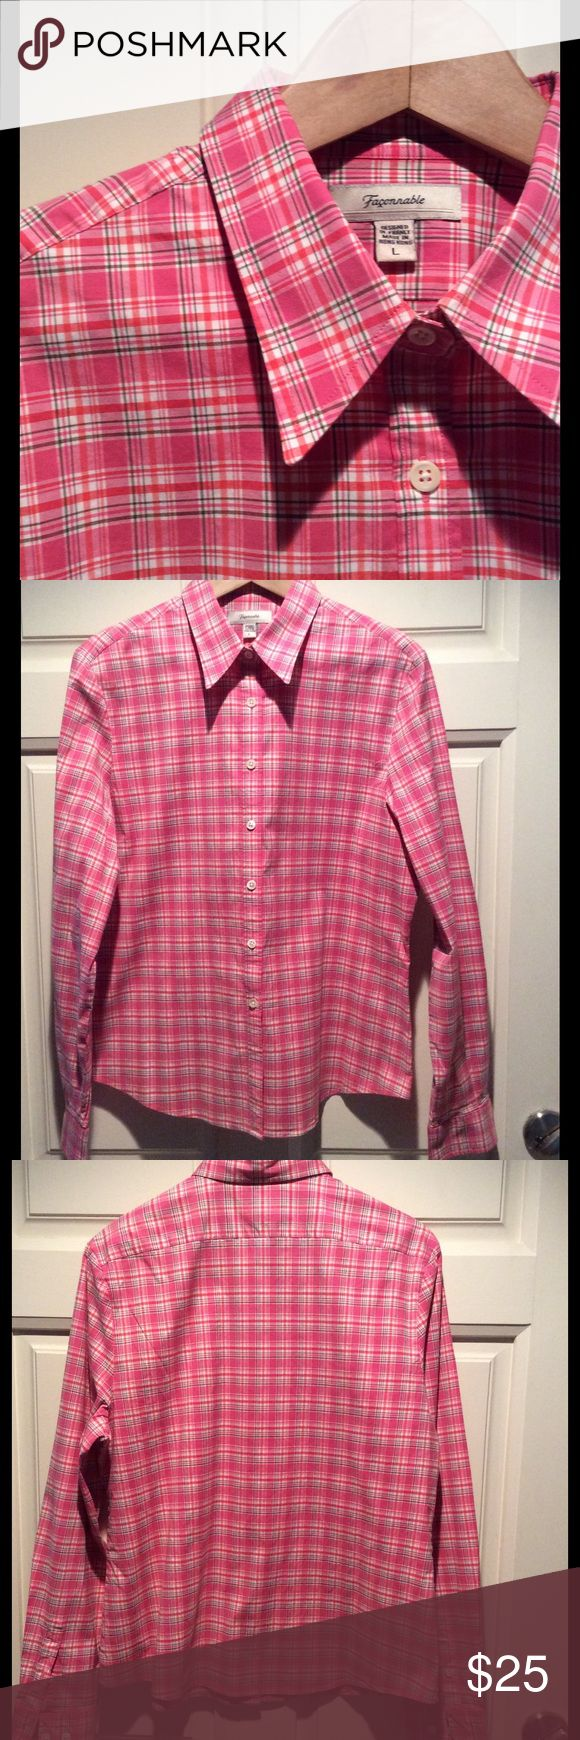 Faconnable shirt Beautiful tailoring in the great fitting shirt.  Great for spring! In perfect condition. Faconnable  Tops Button Down Shirts